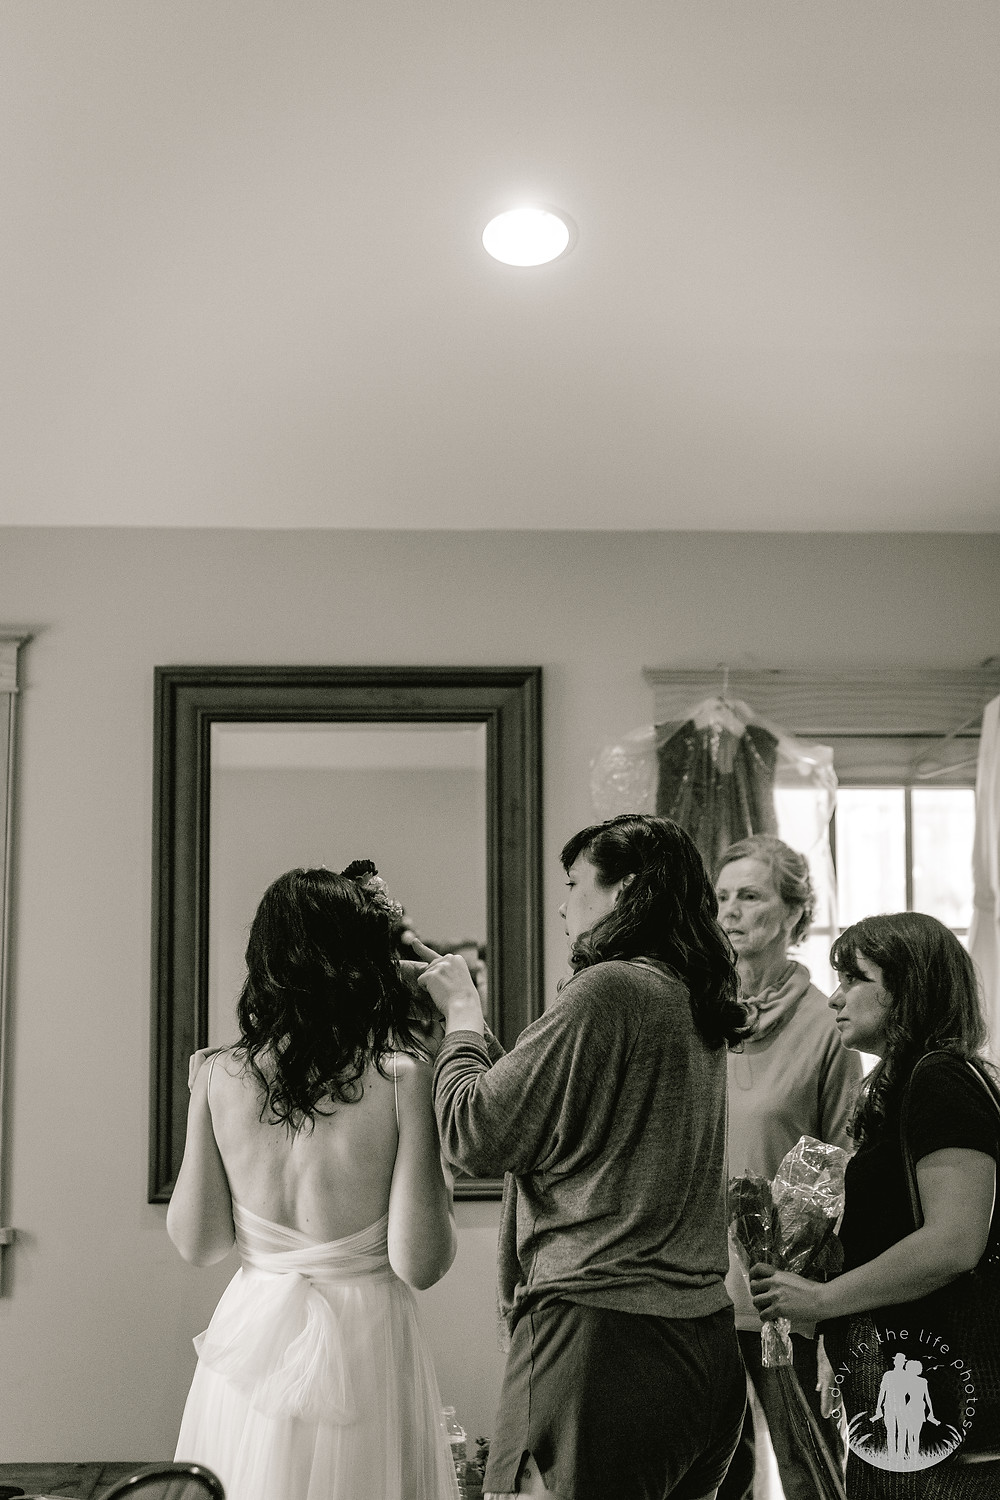 Bride getting ready in bridal suite at the Long Hill Farm in Callicoon New York a wedding venue located in upstate New York